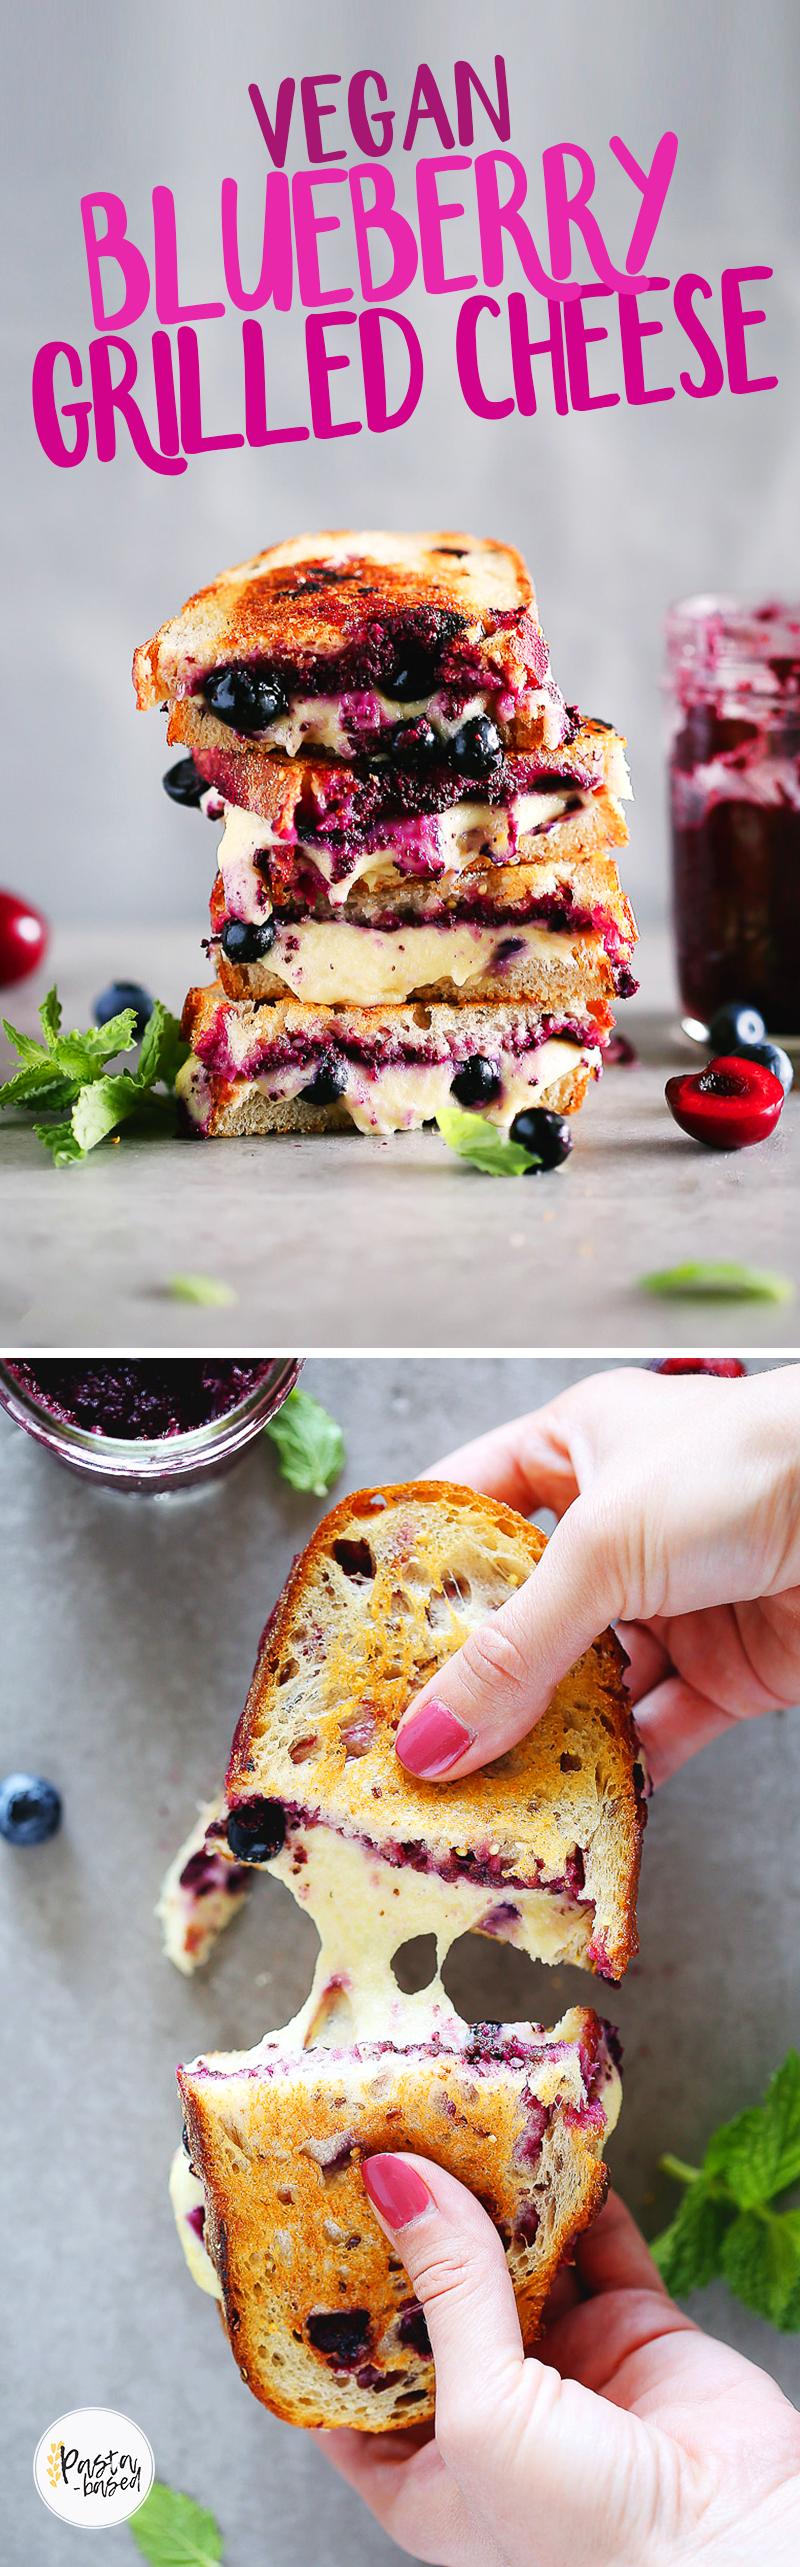 VEGAN. DAIRY-FREE. Grilled cheese with a tart blueberry spread by Pasta-based.